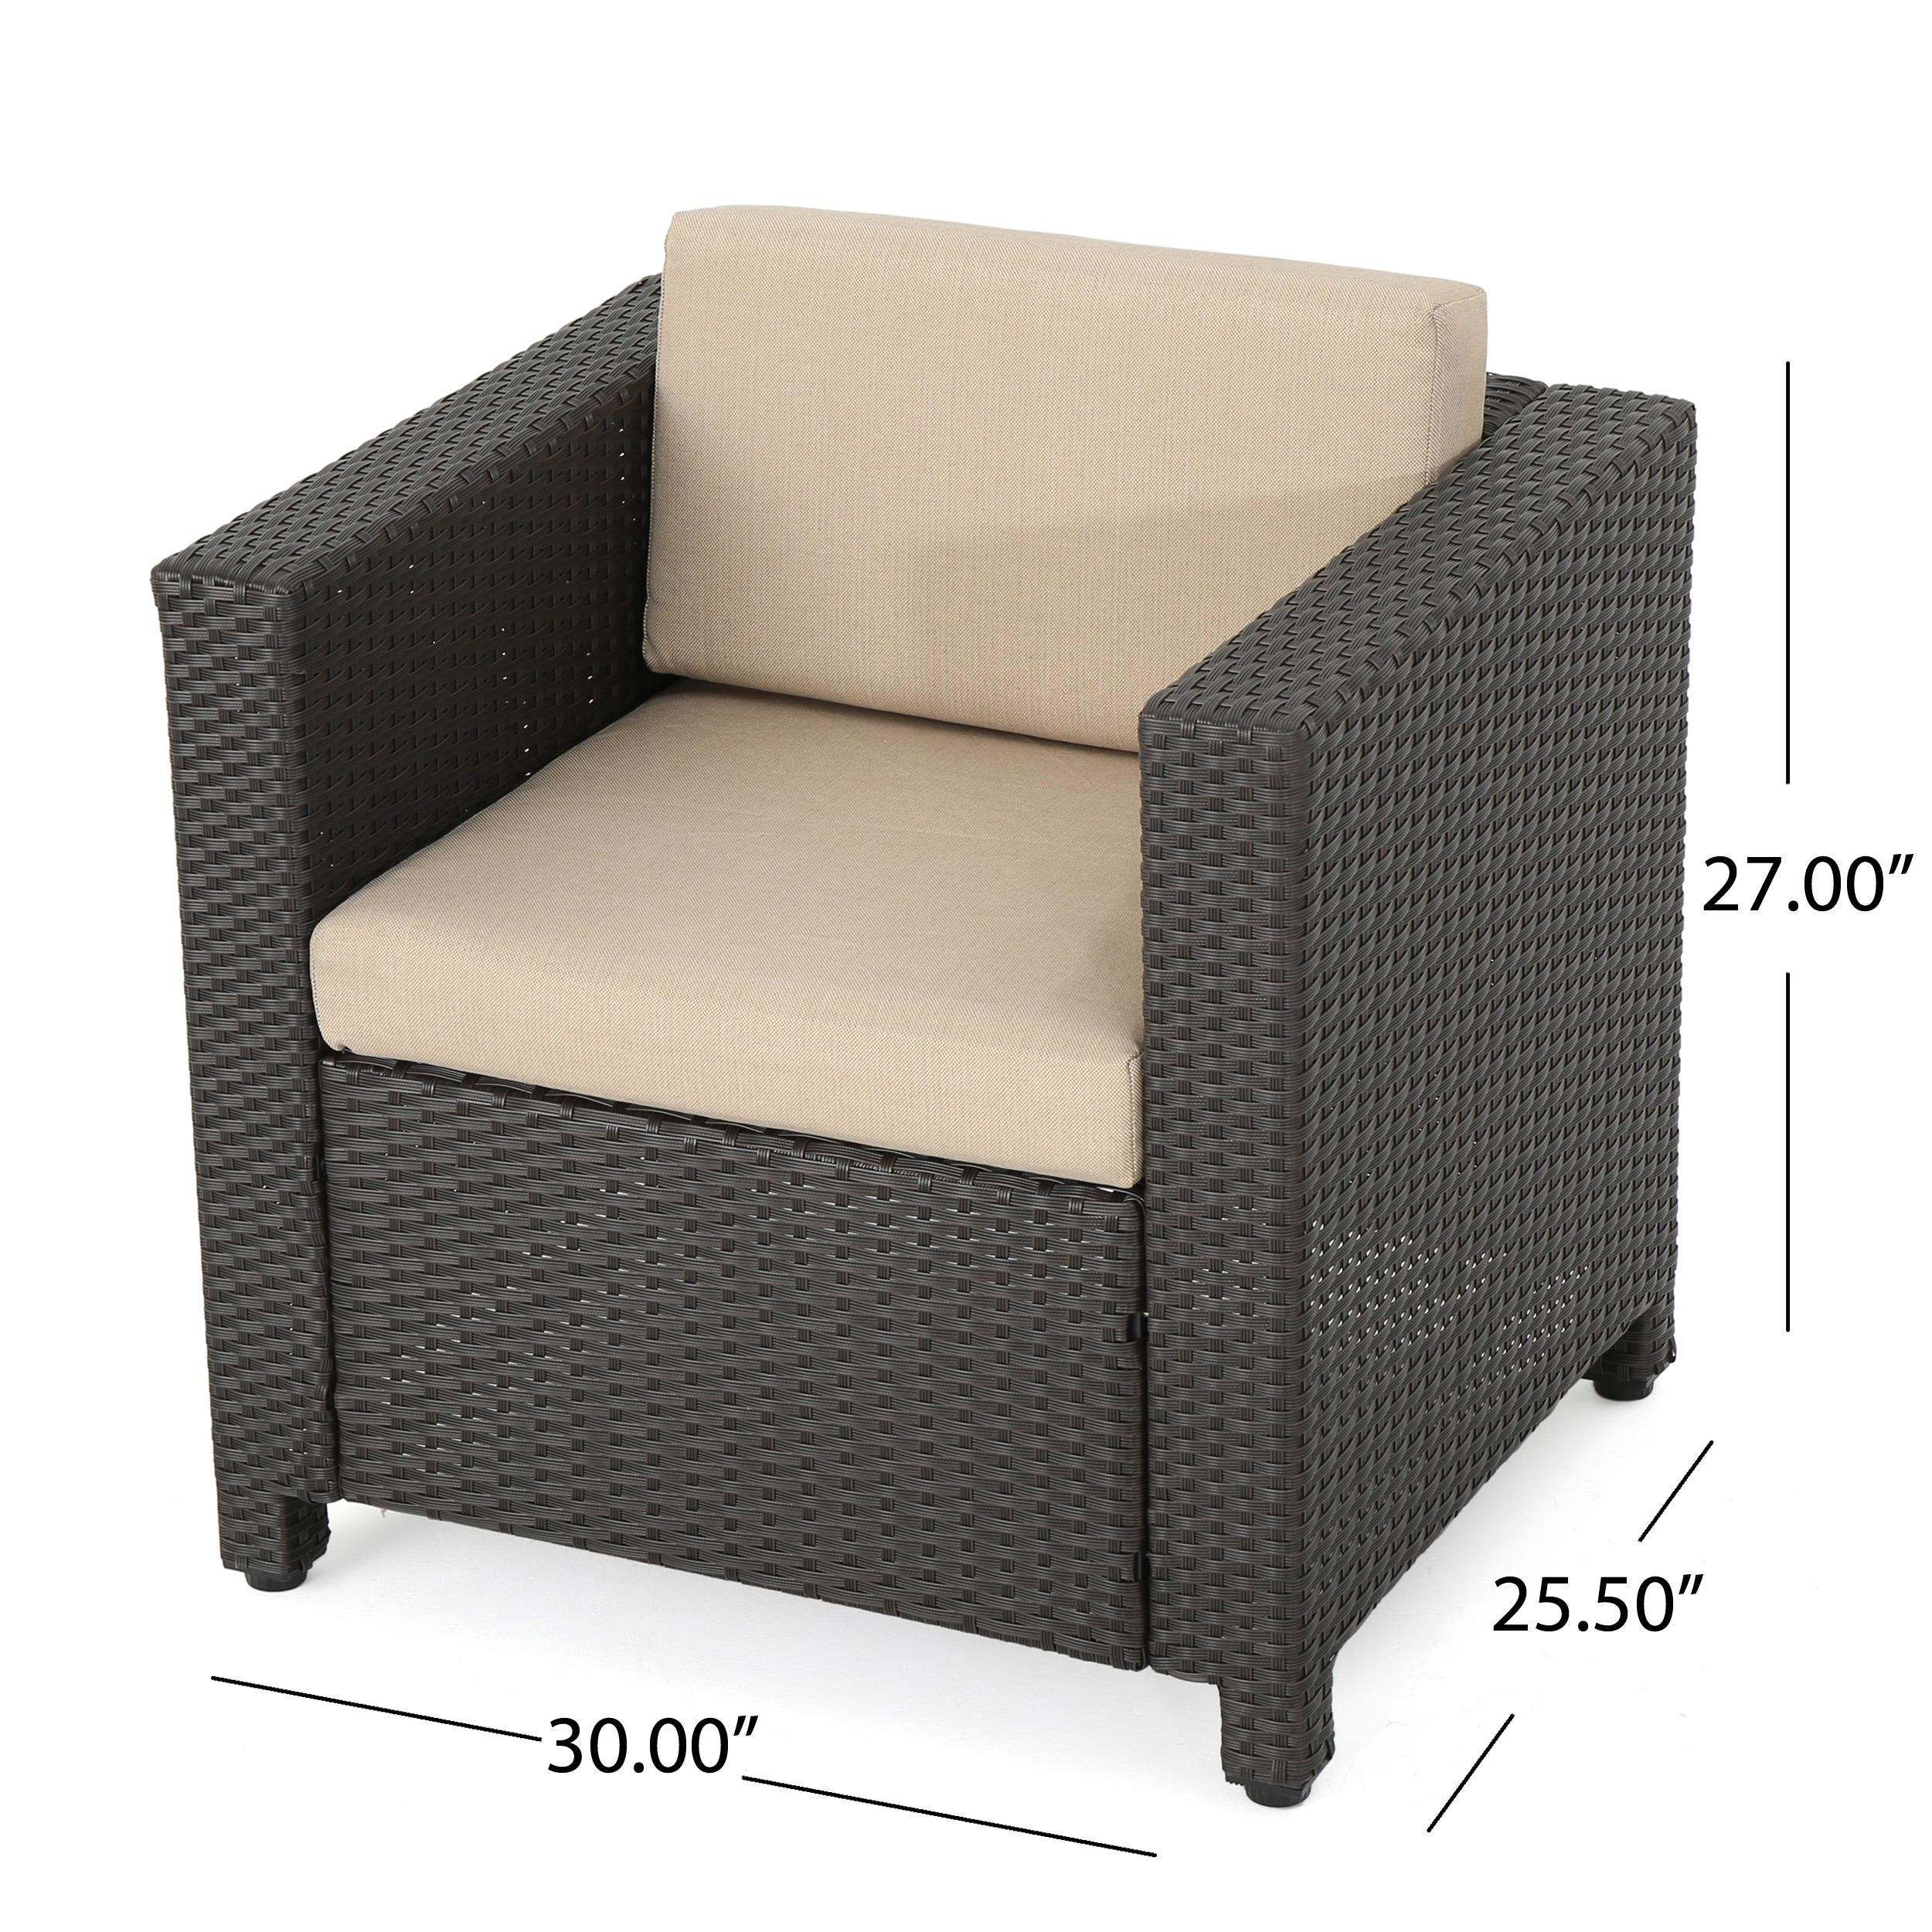 Exceptional Shop Puerta Outdoor Wicker Club Chair With Cushions (Set Of 2) By  Christopher Knight Home   On Sale   Free Shipping Today   Overstock.com    15631272